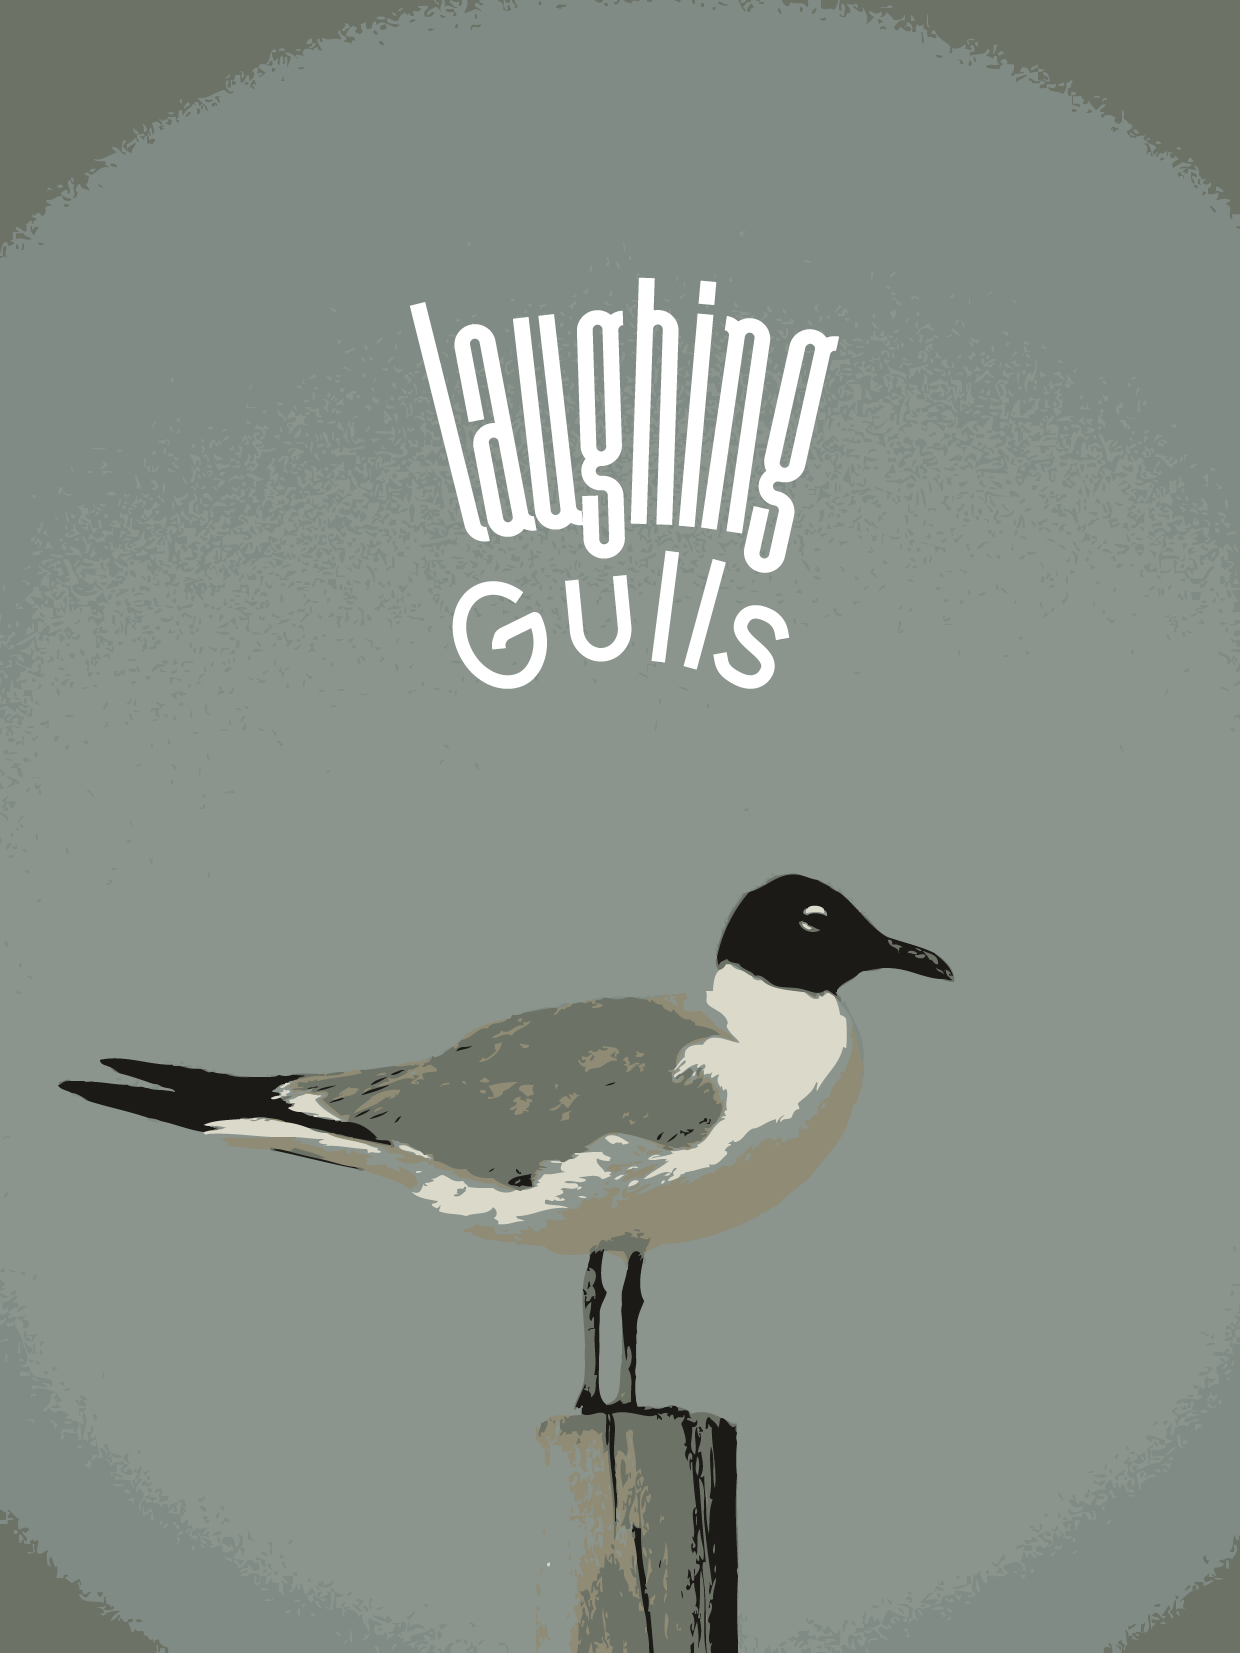 seagull image with image tracing